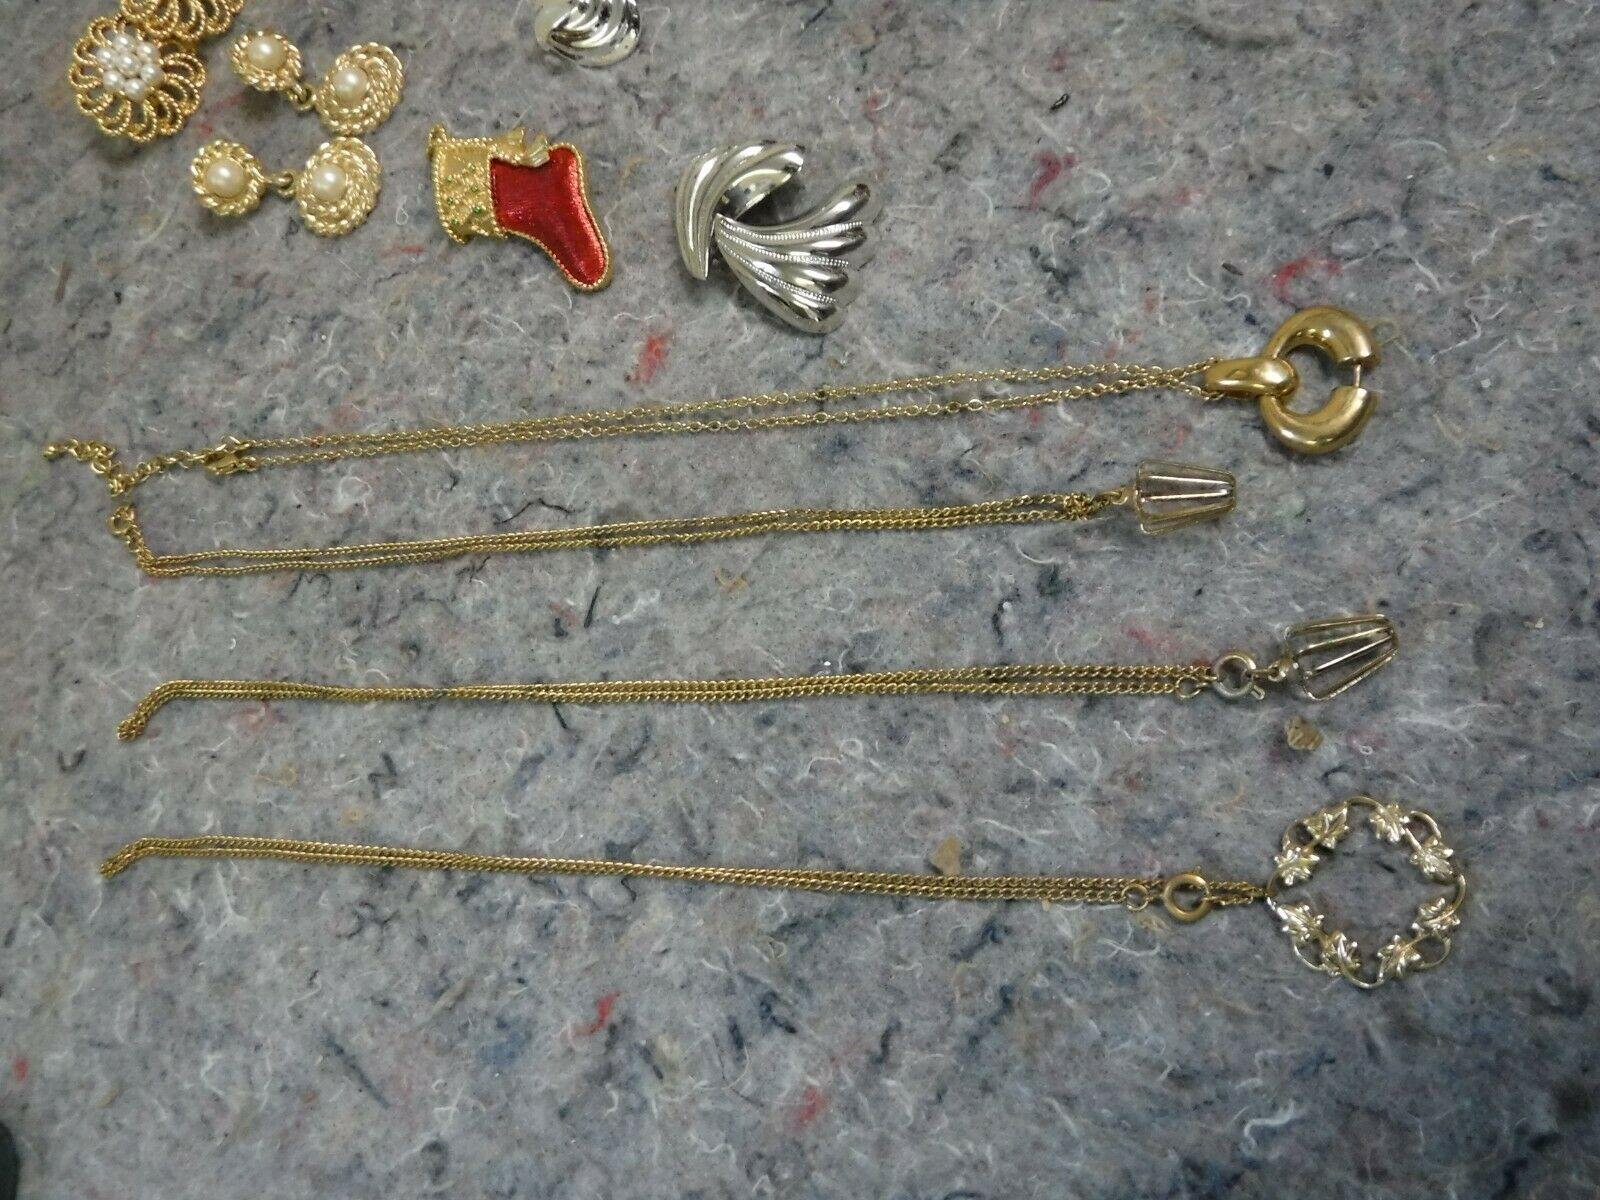 Lot of Mixed Costume Jewelry-Bracelet, Necklace, … - image 2